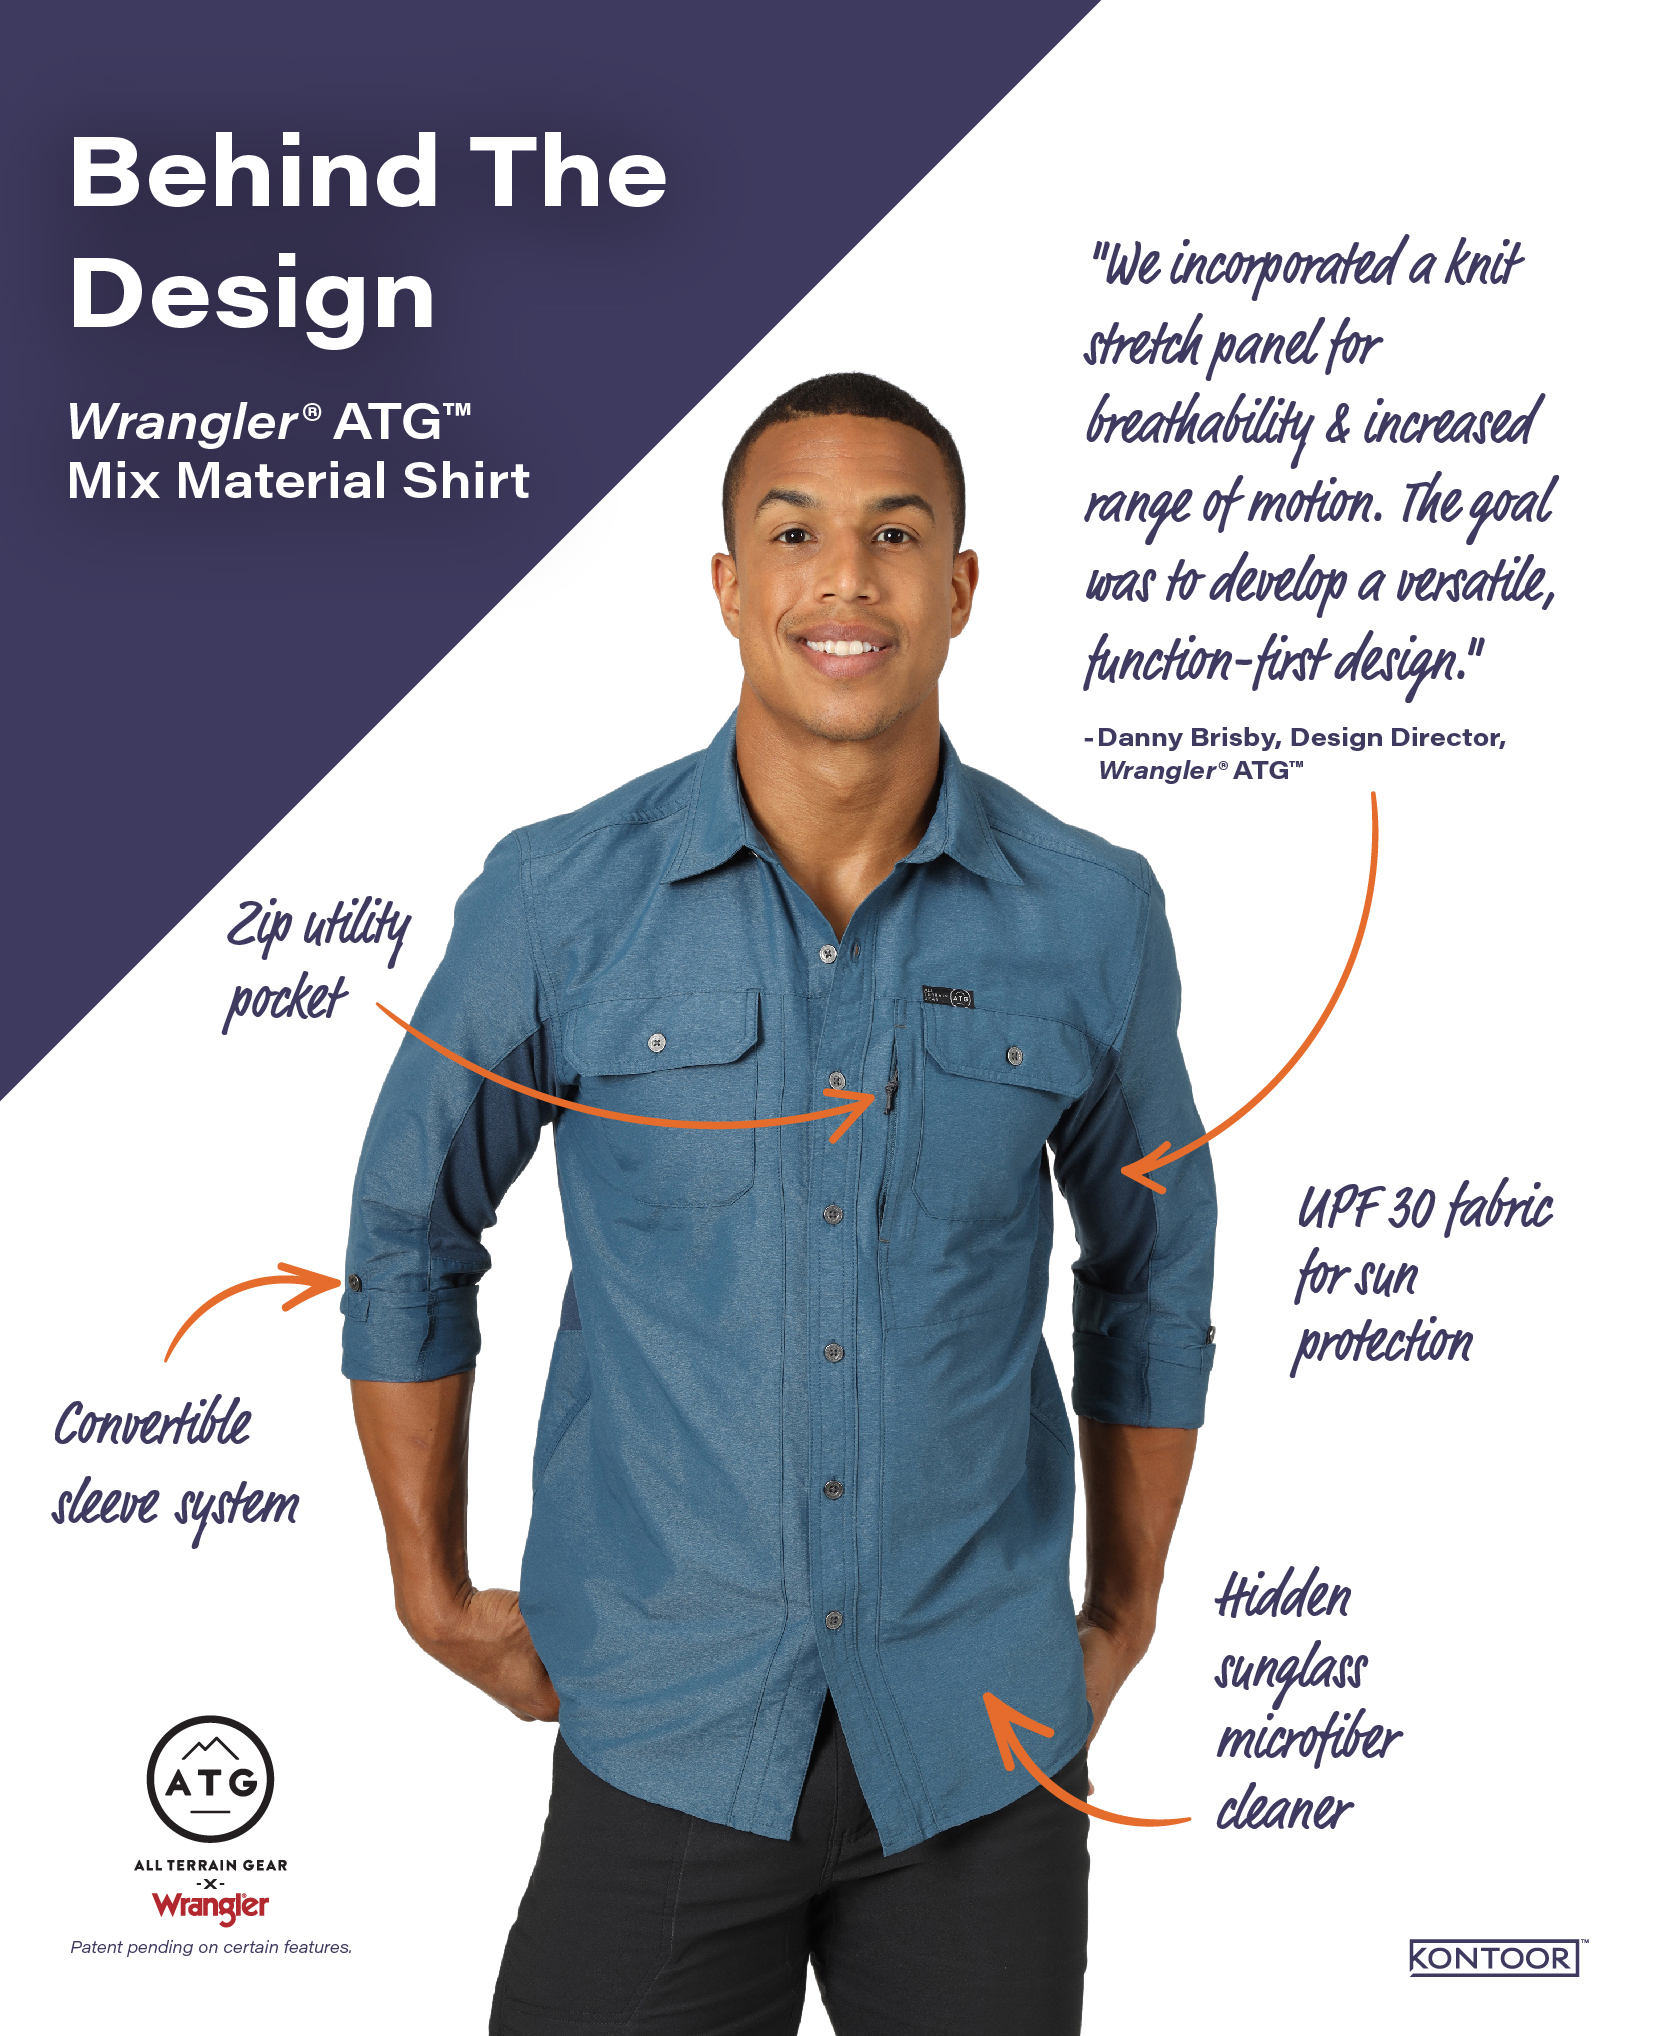 Form Follows Function for Wrangler® ATG™ Mix Material Shirt